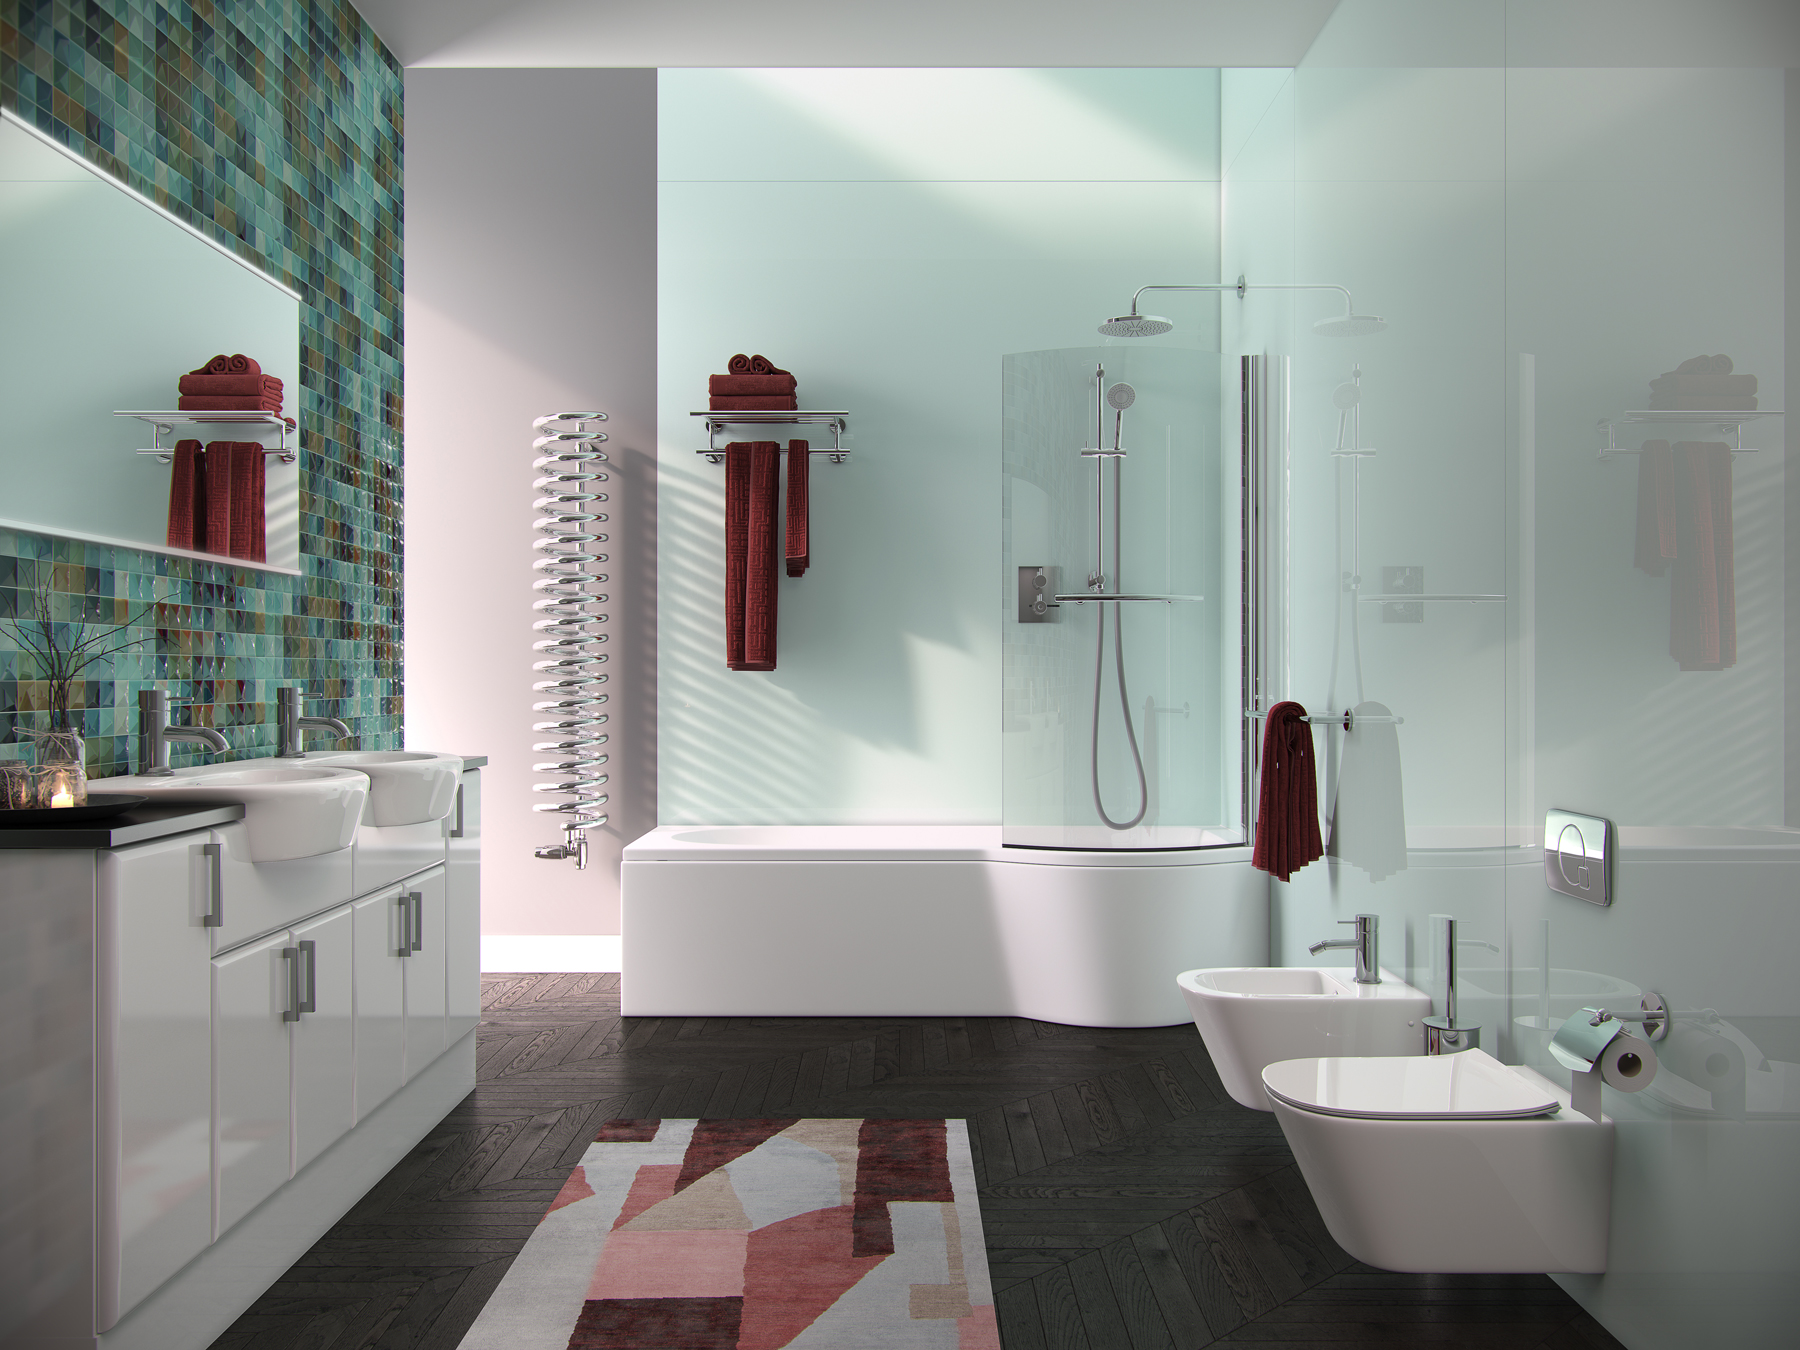 About - Herts Bathrooms